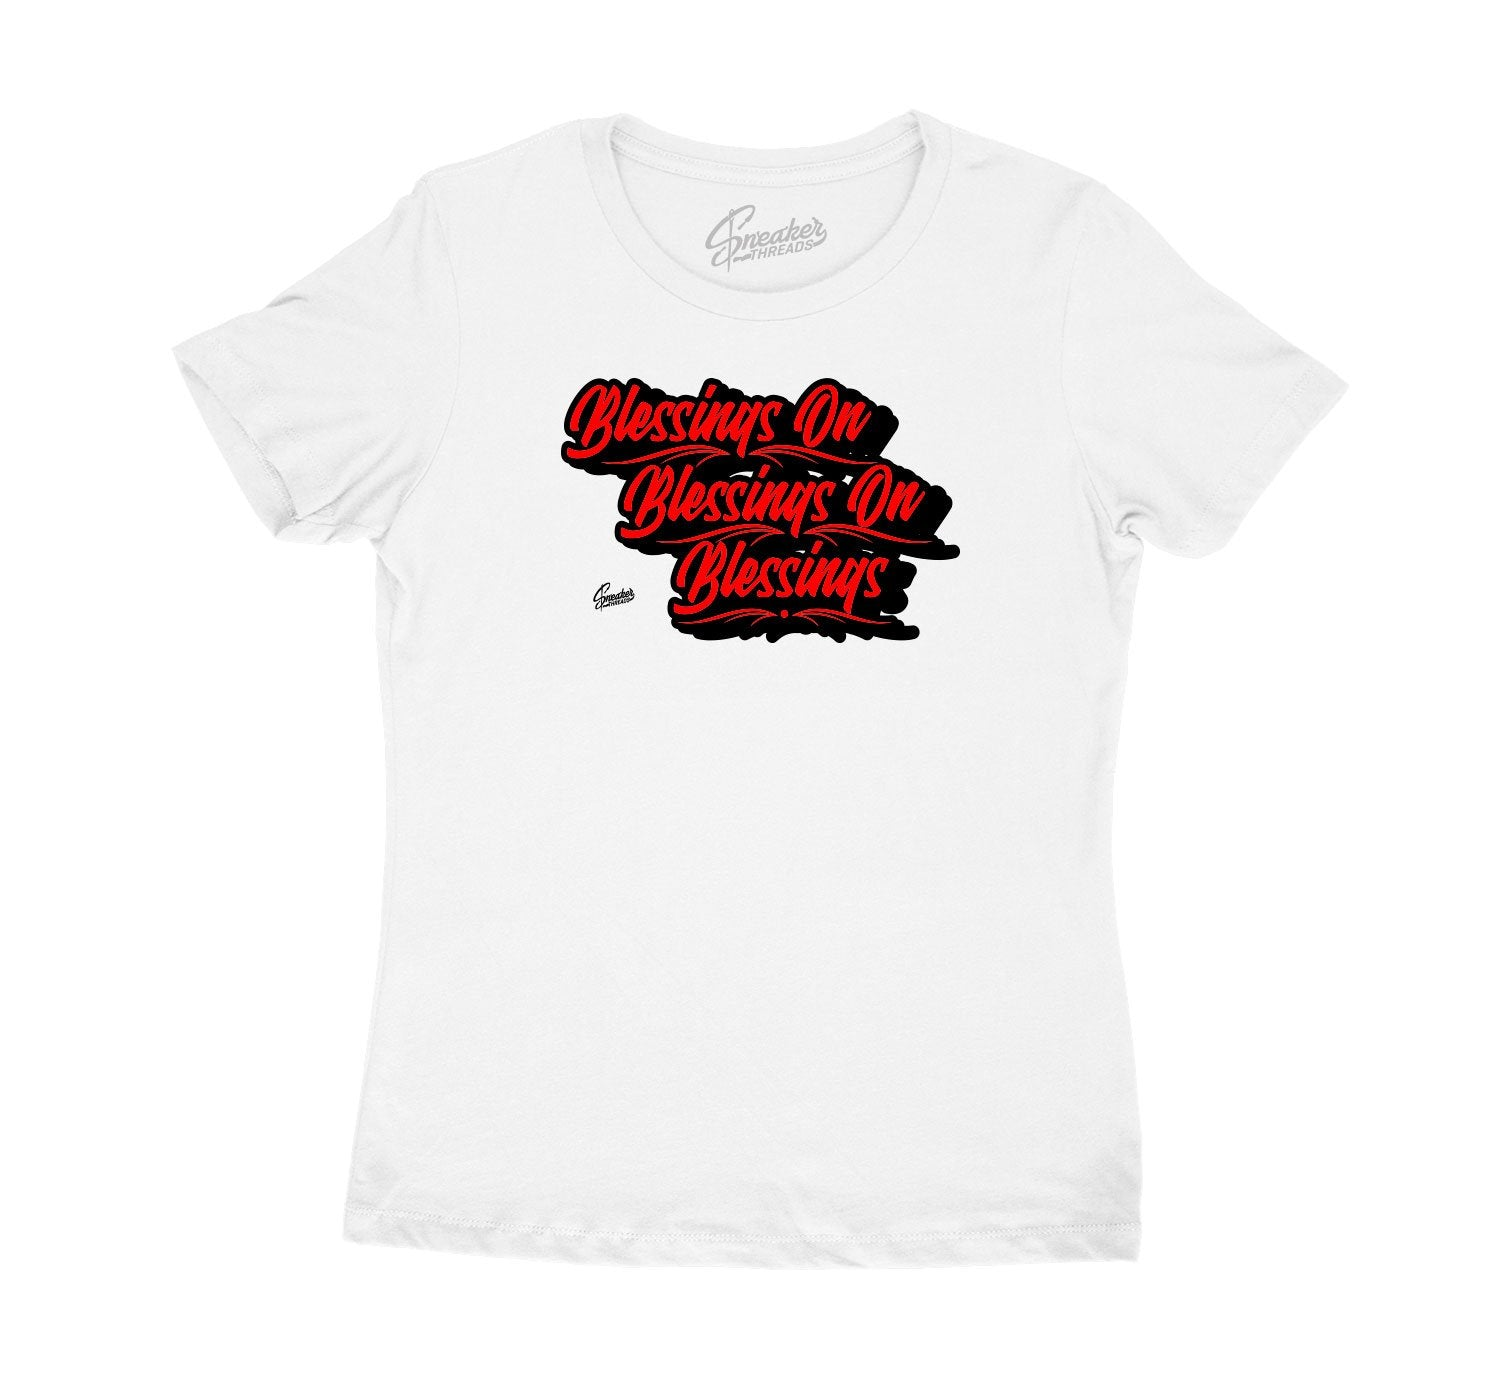 ladies shirts made to match the Jordan 11 retro bred sneakers